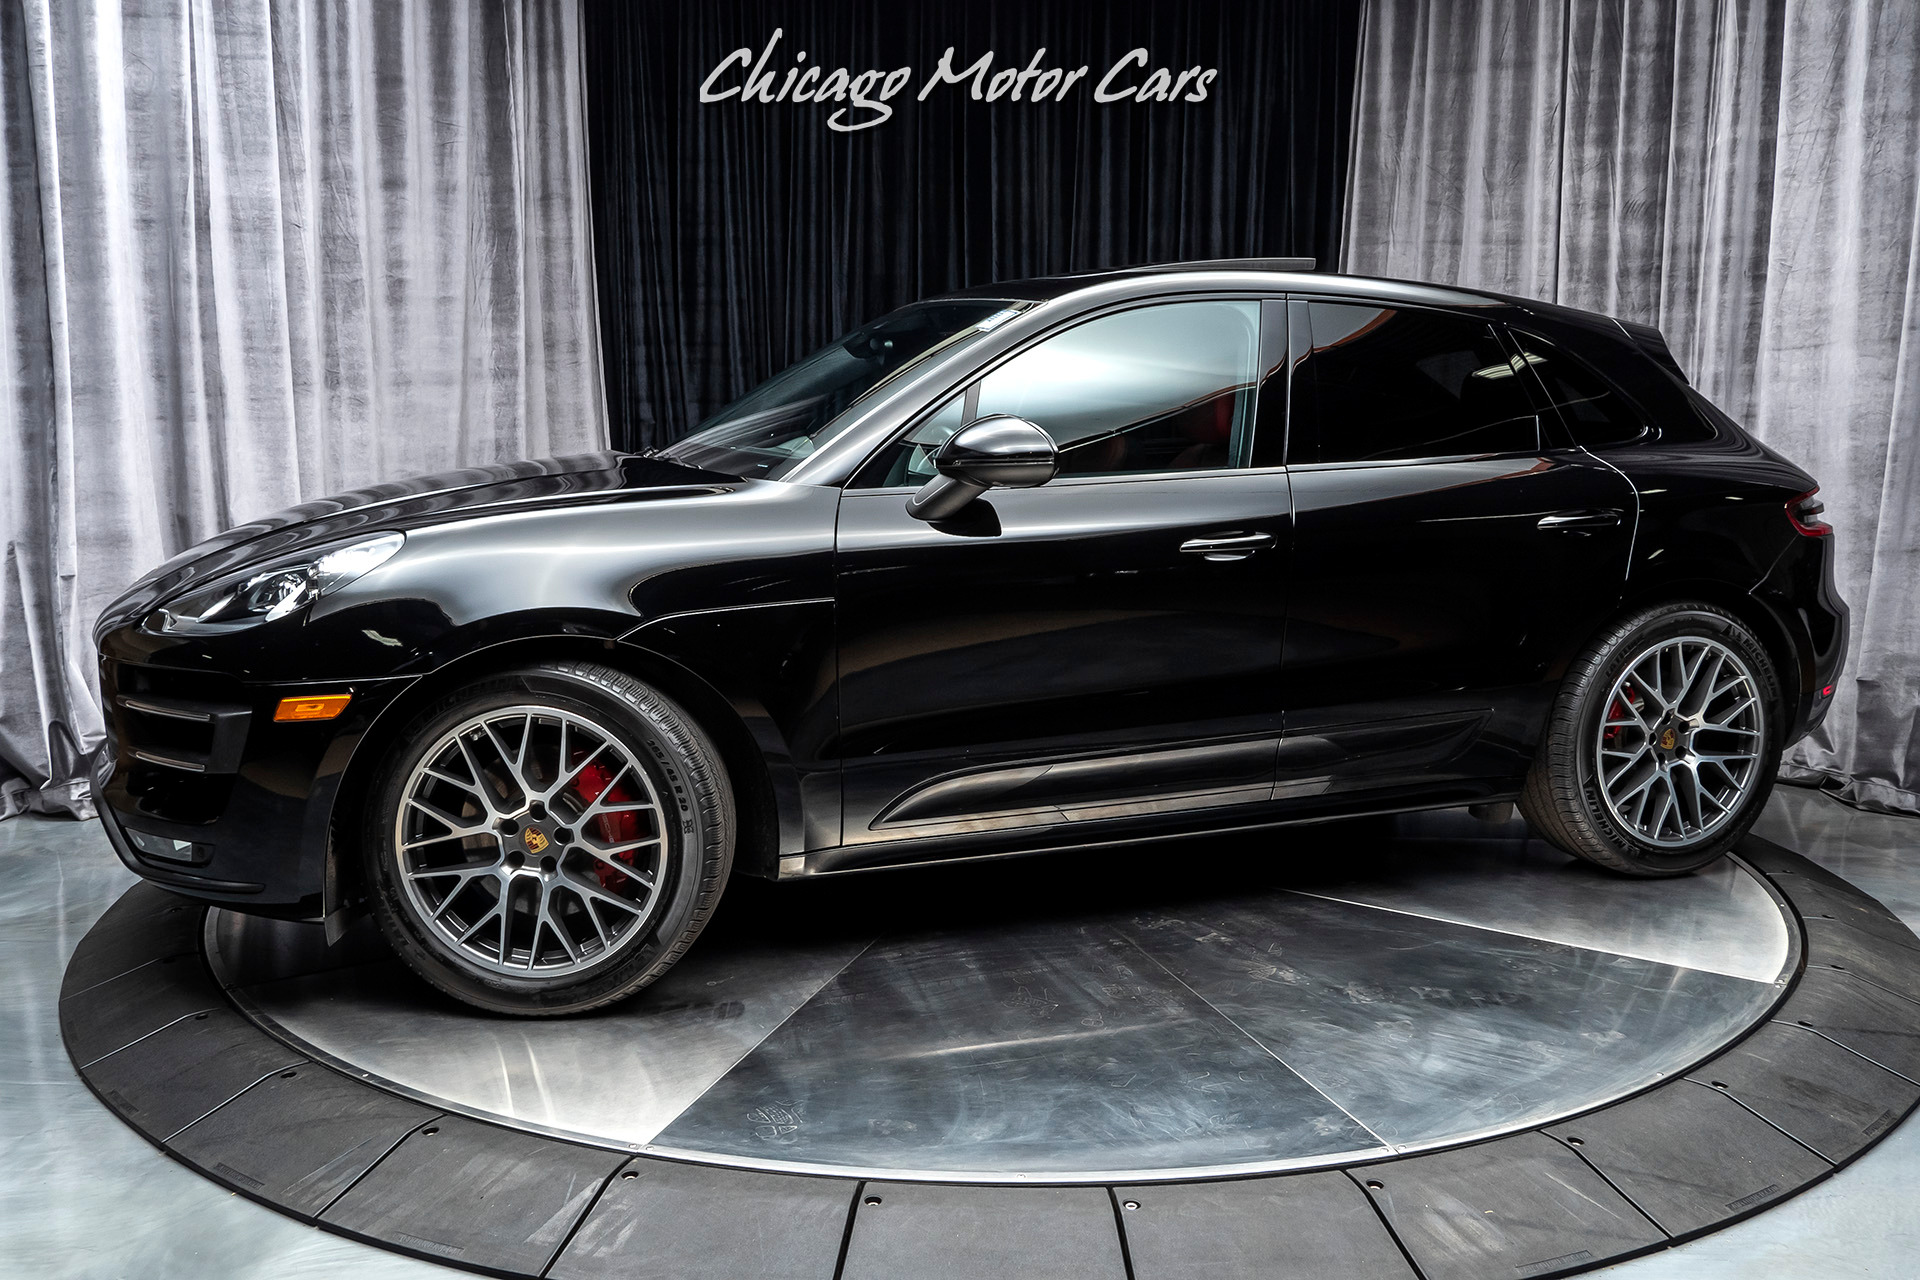 Used 2017 Porsche Macan Turbo For Sale Special Pricing Chicago Motor Cars Stock 15352b